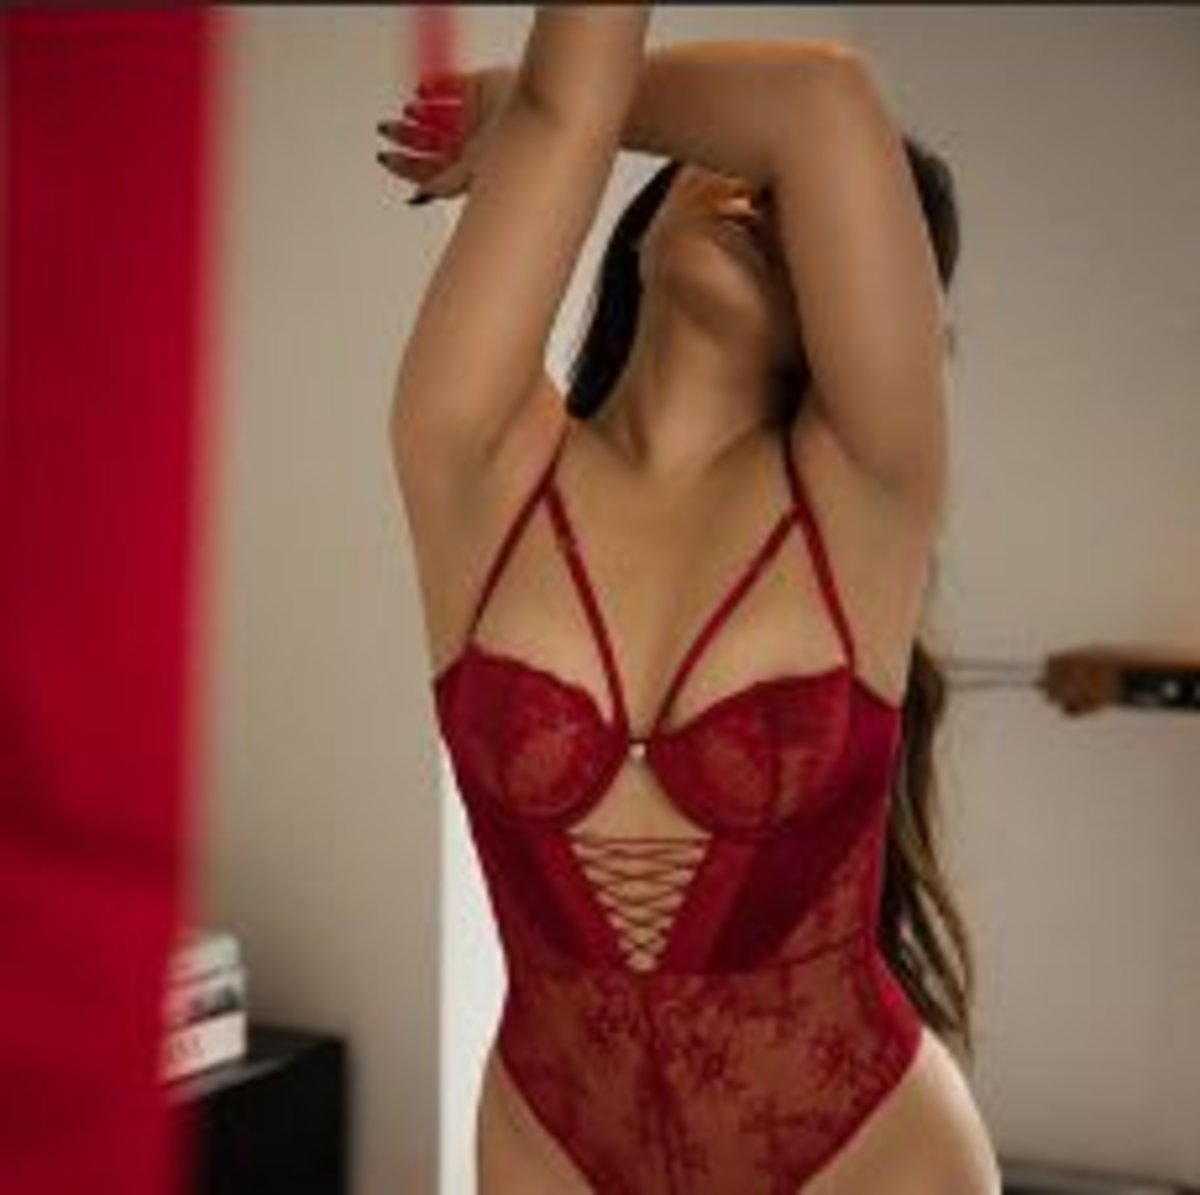 Sydney European Escort Agencies Aria May